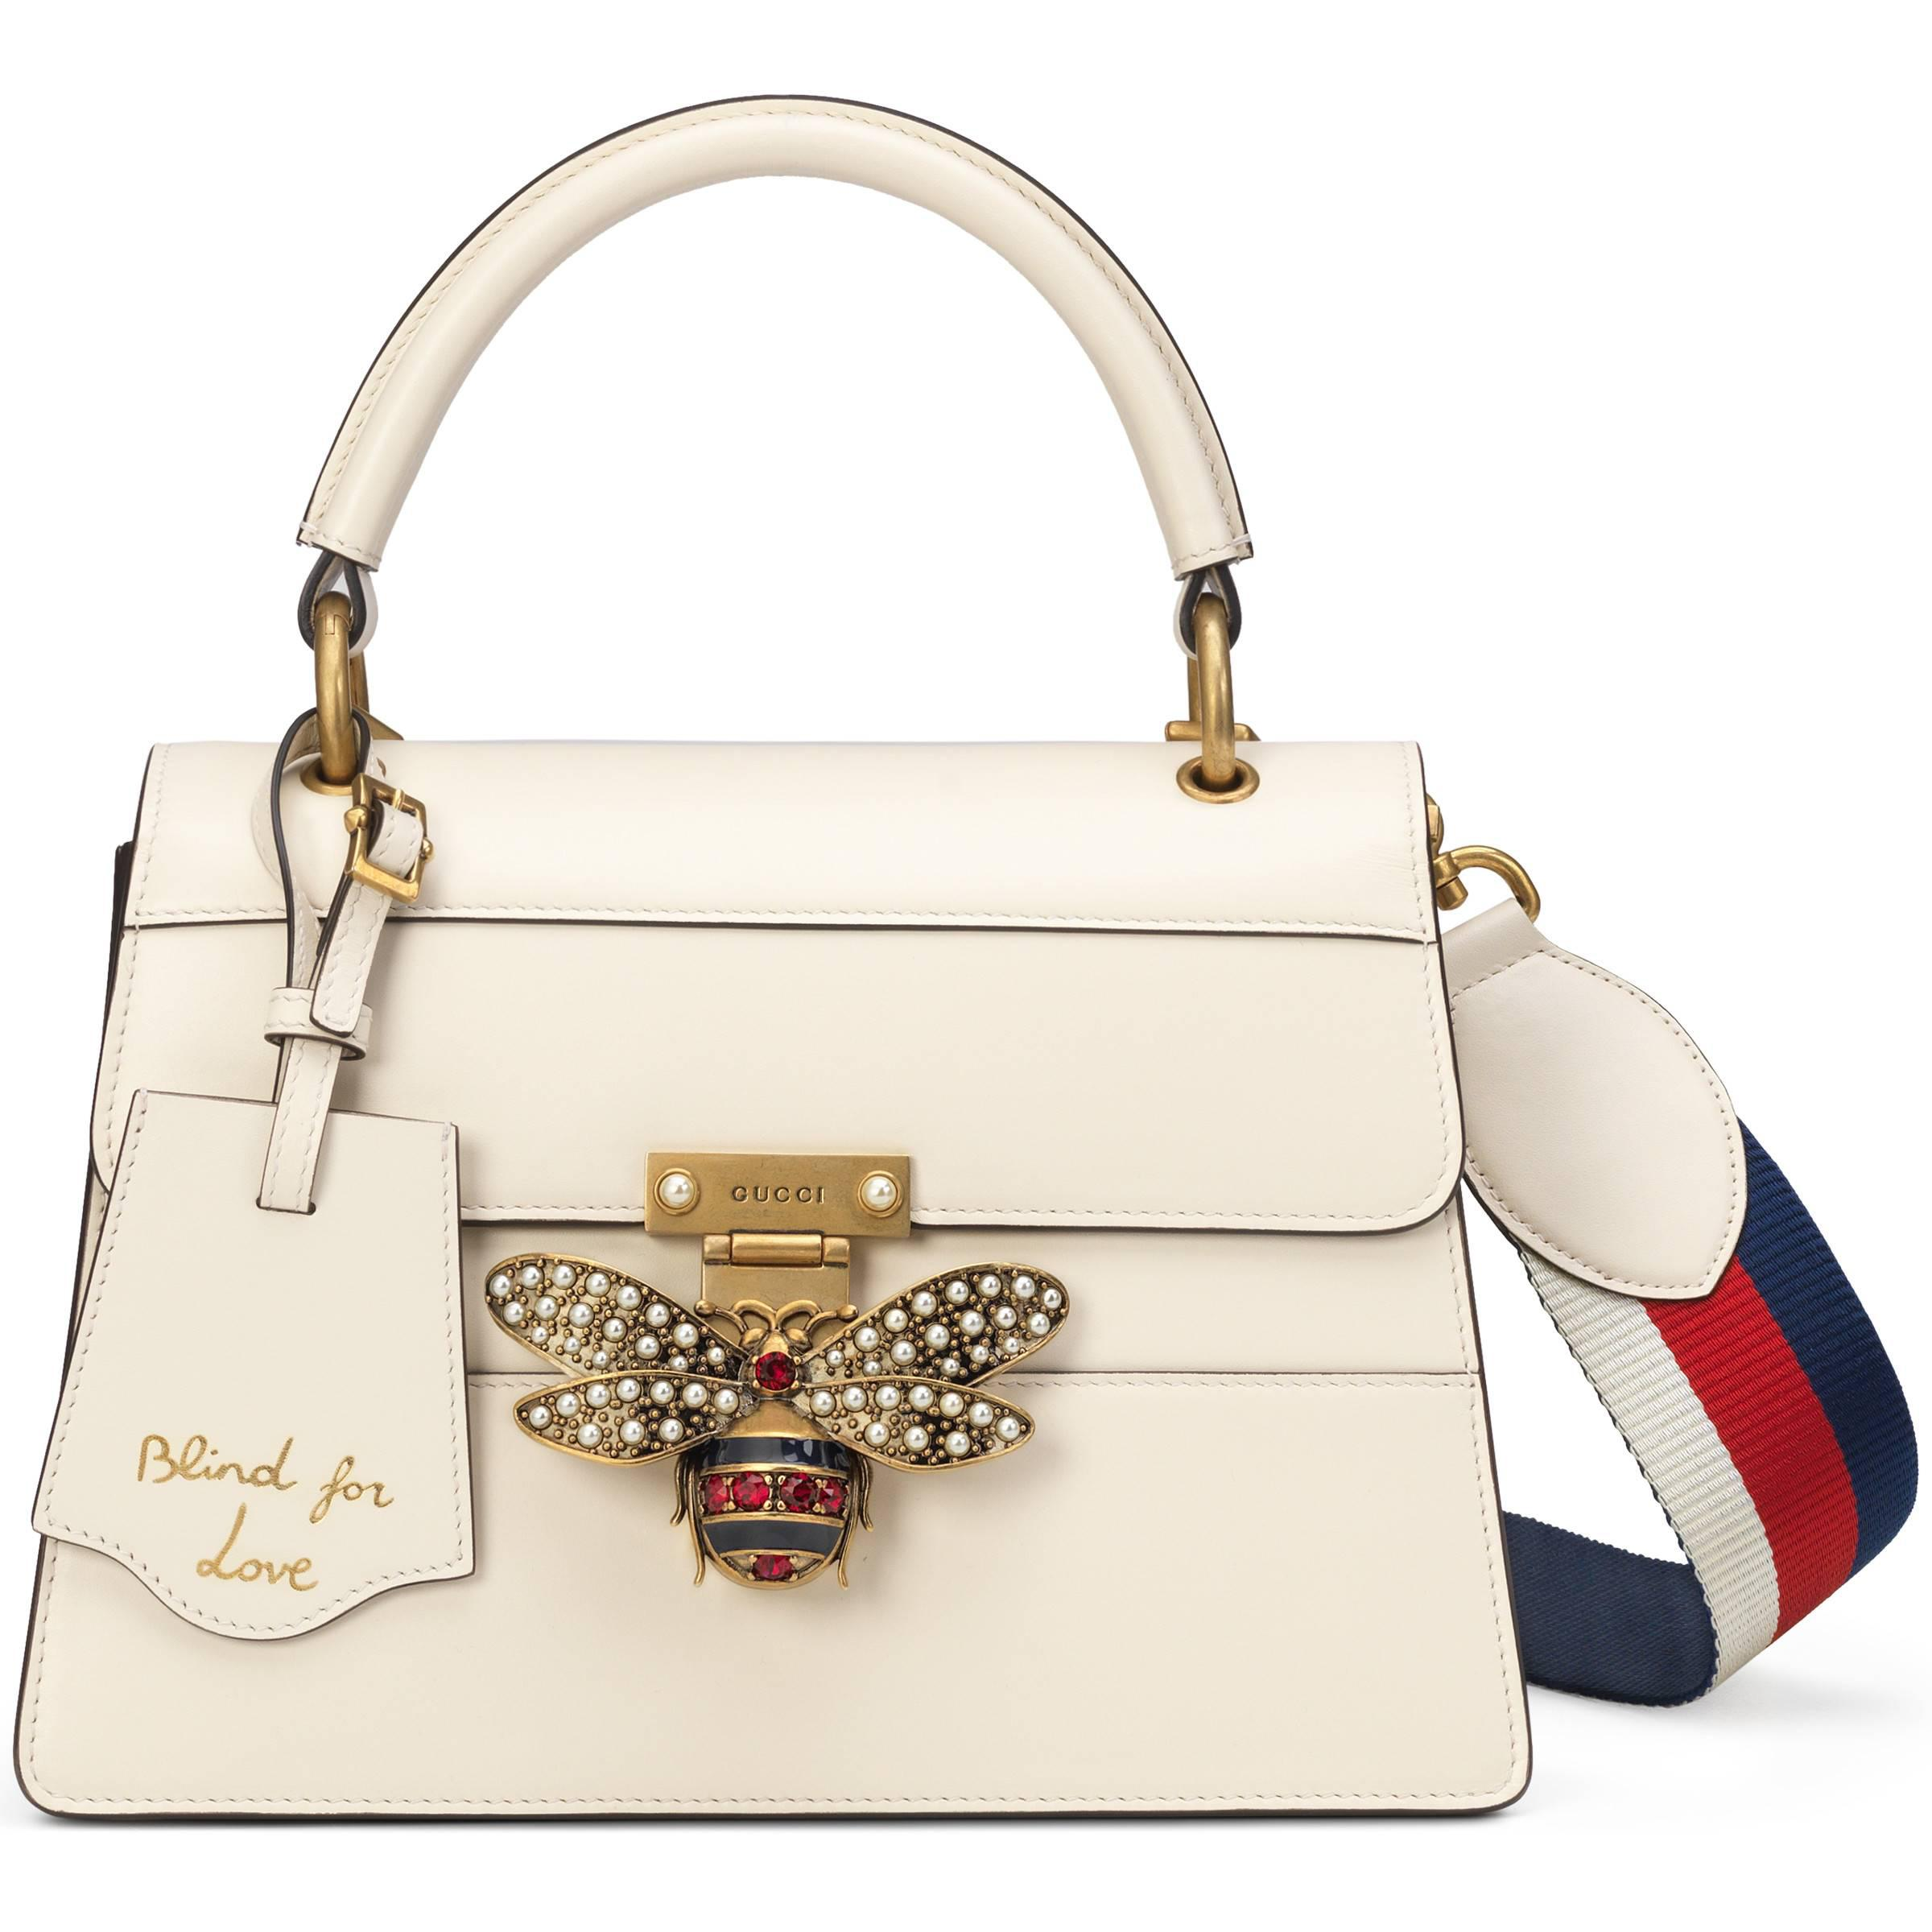 46a848e5d80 Gucci Queen Margaret Small Top Handle Bag in White - Lyst